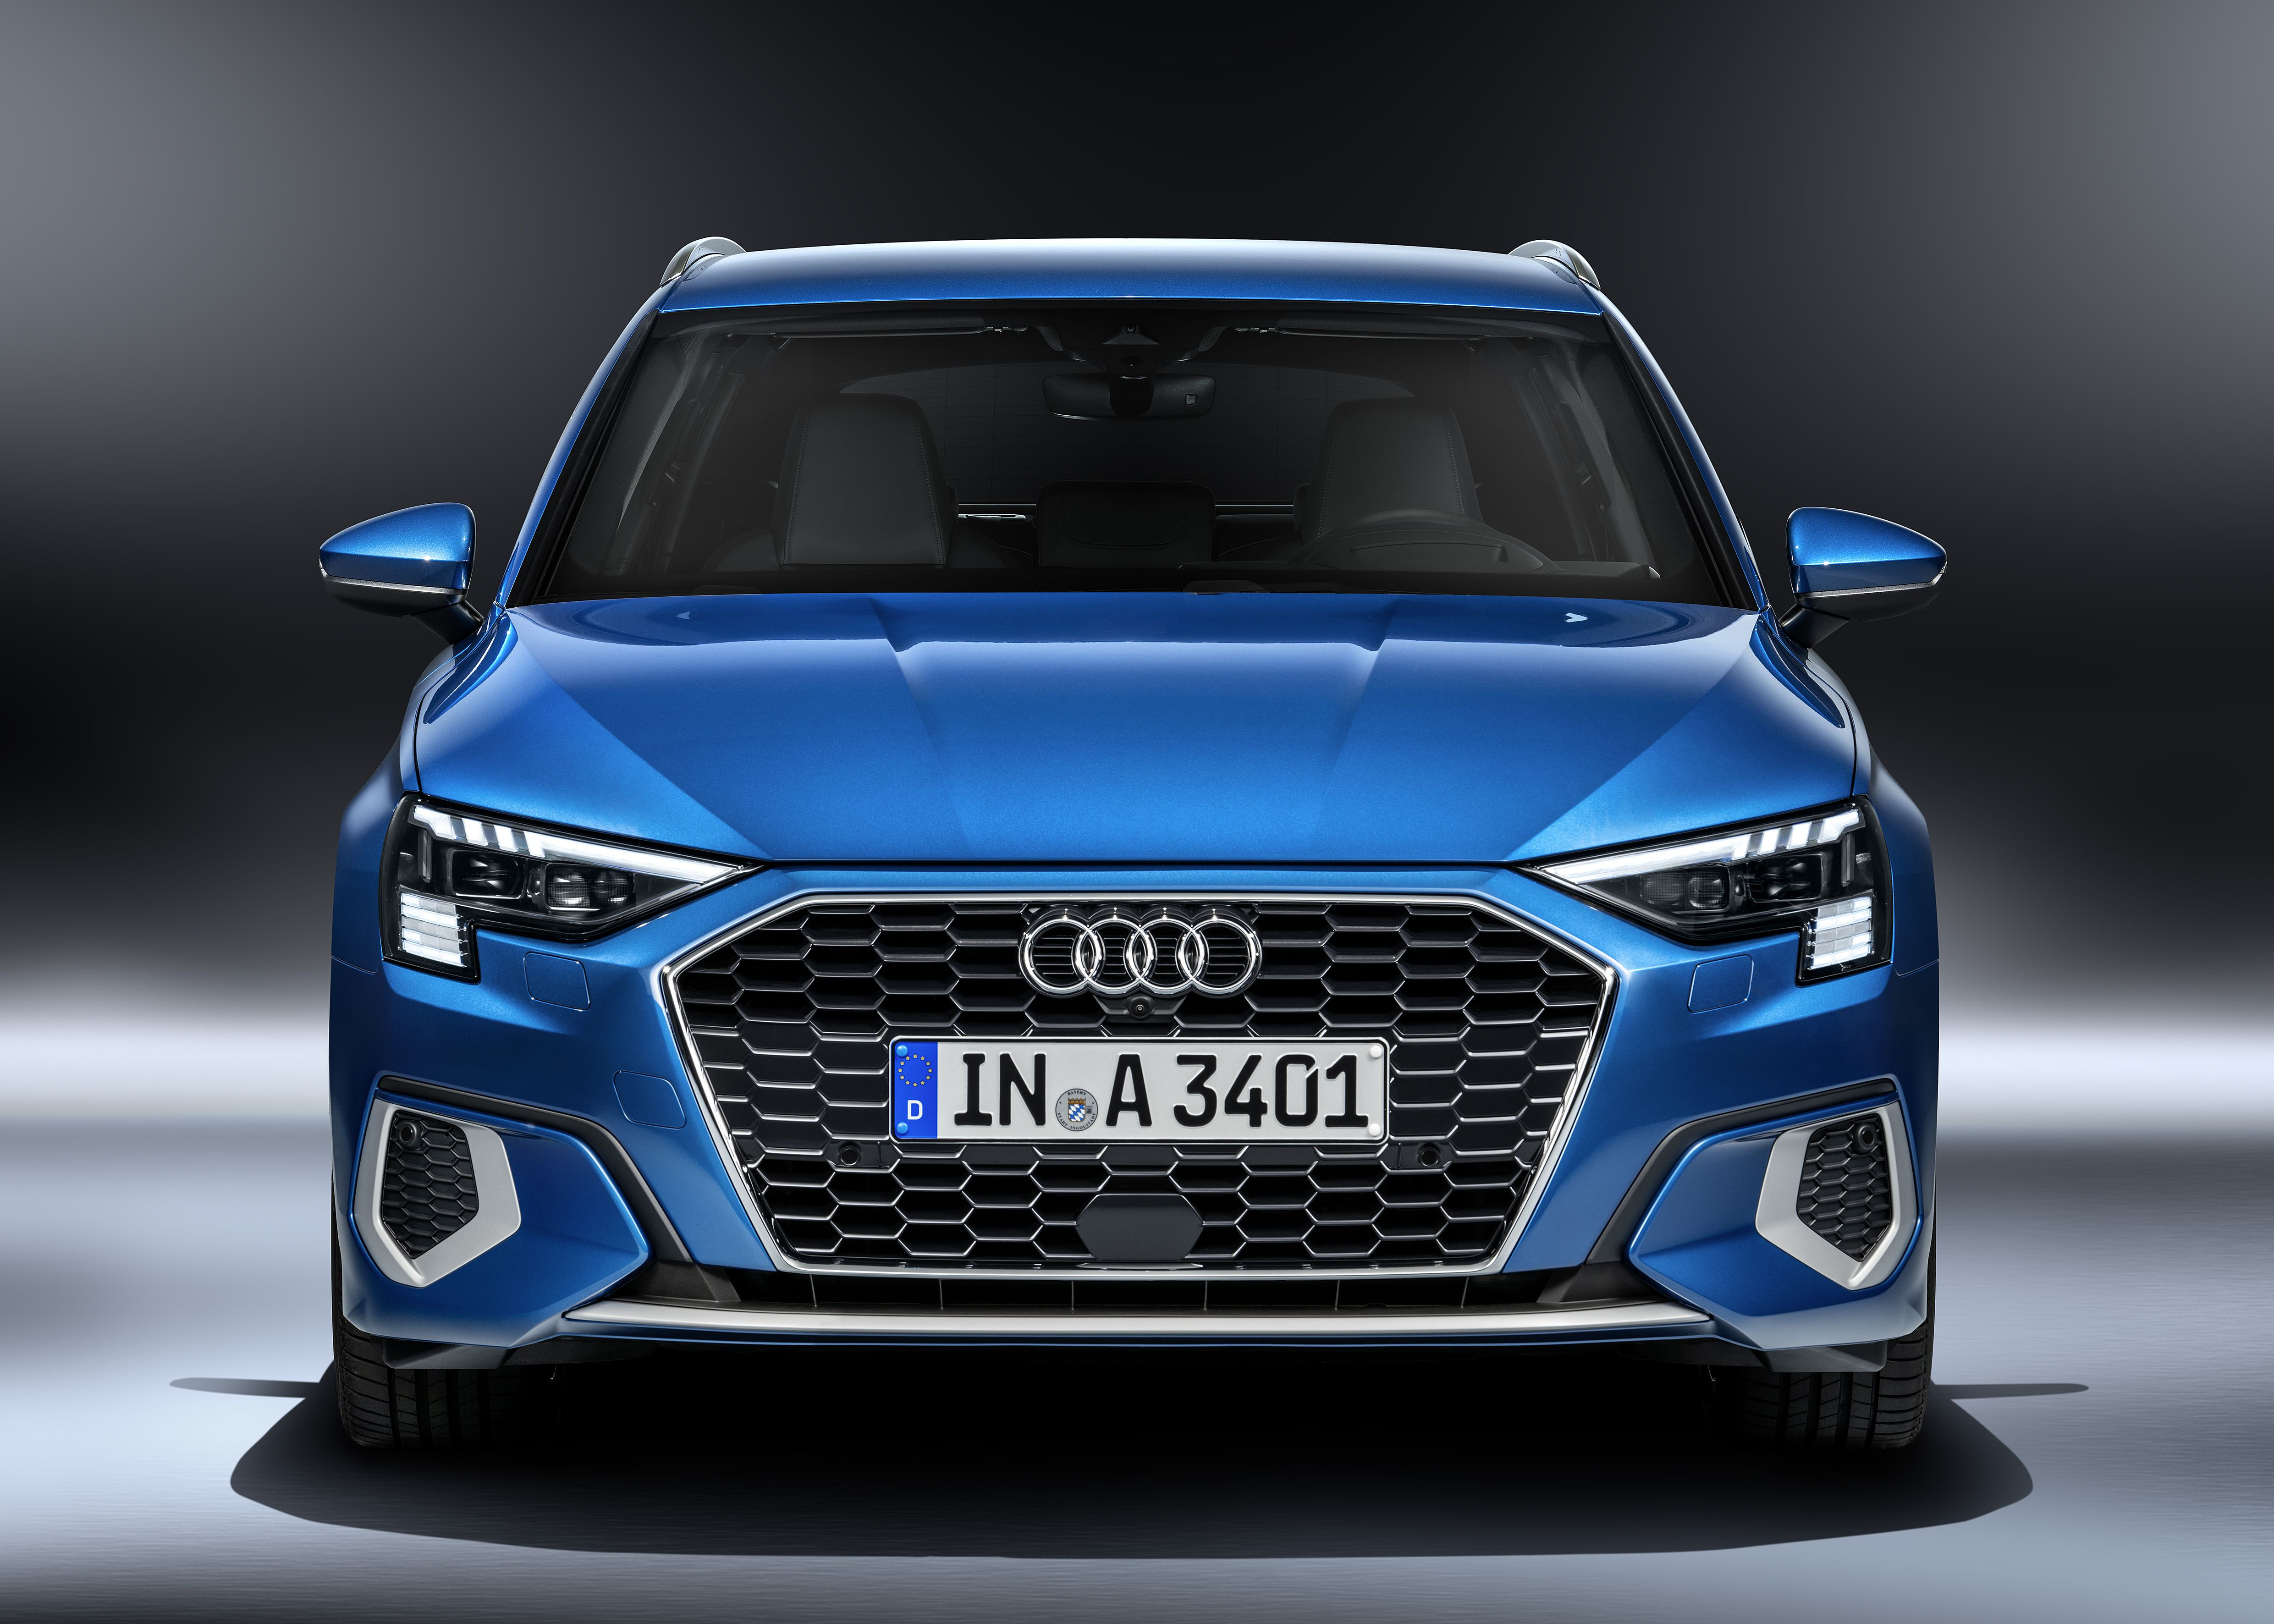 Front view of Audi A3 Sportback